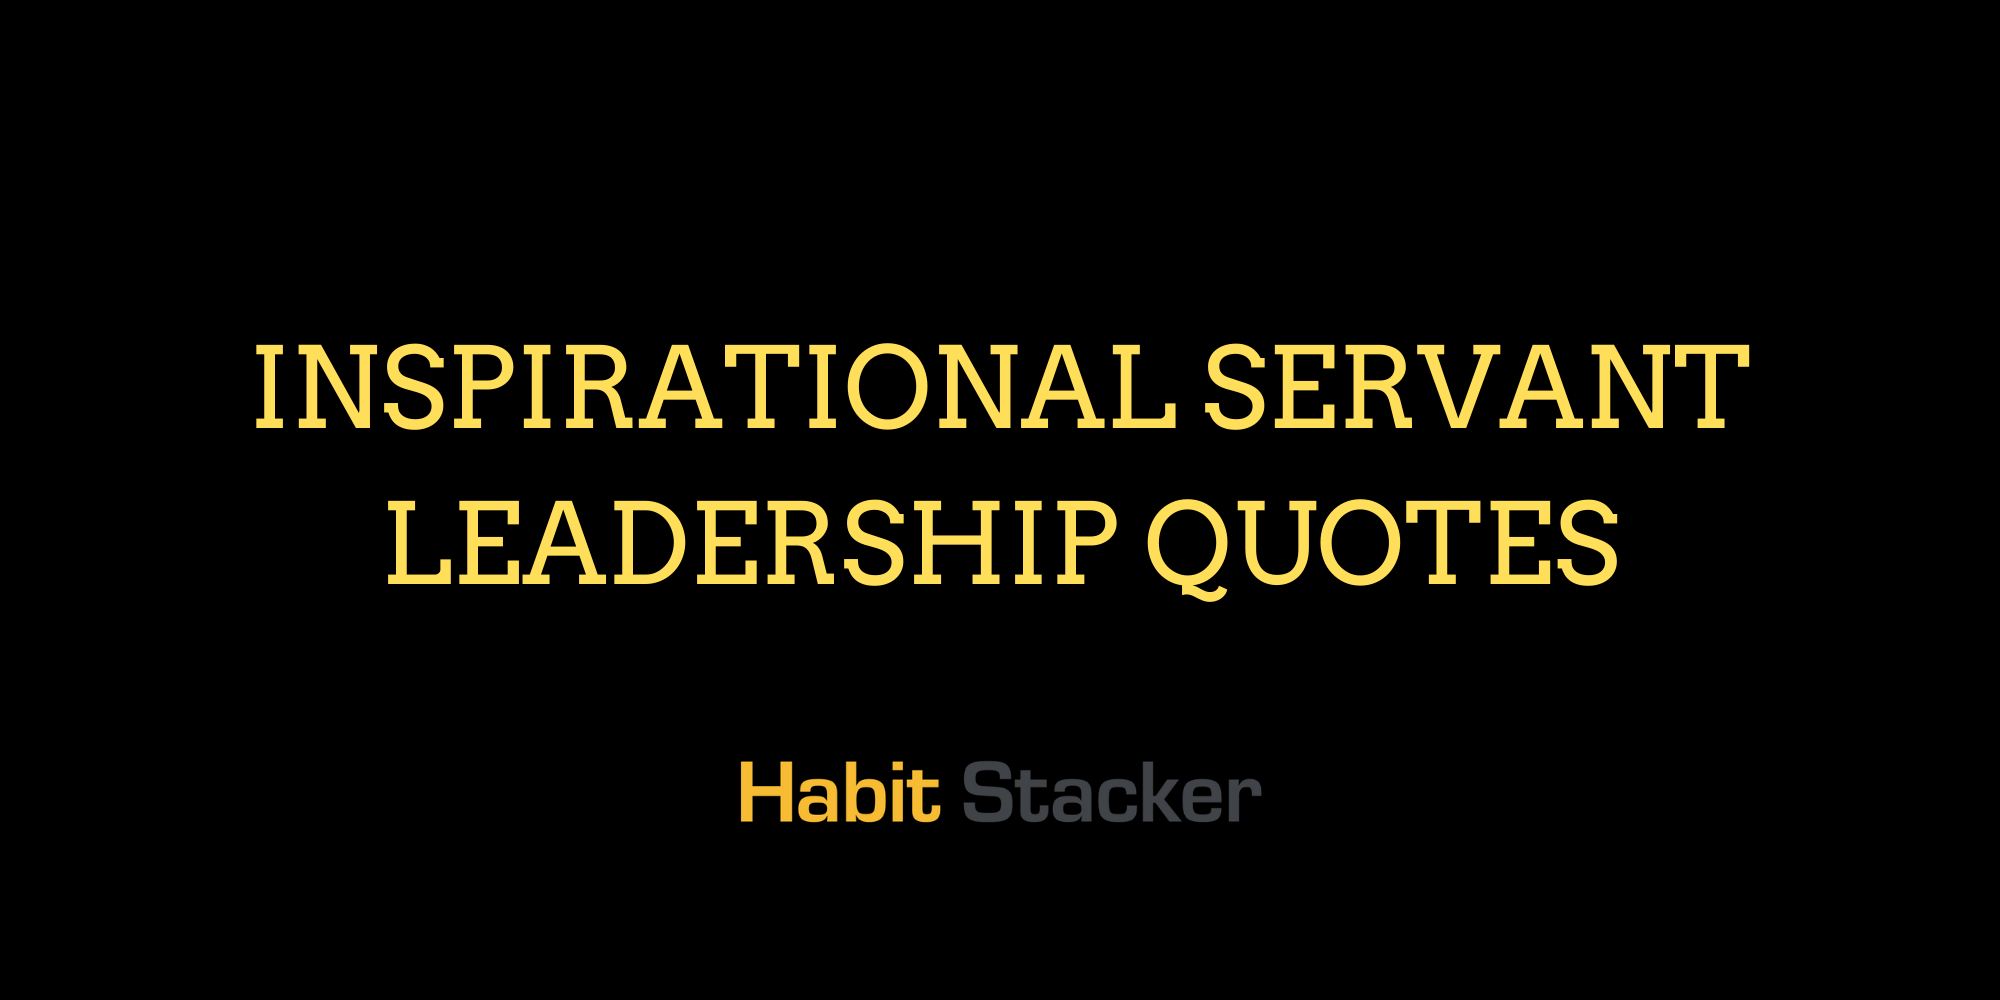 Inspirational Servant Leadership Quotes